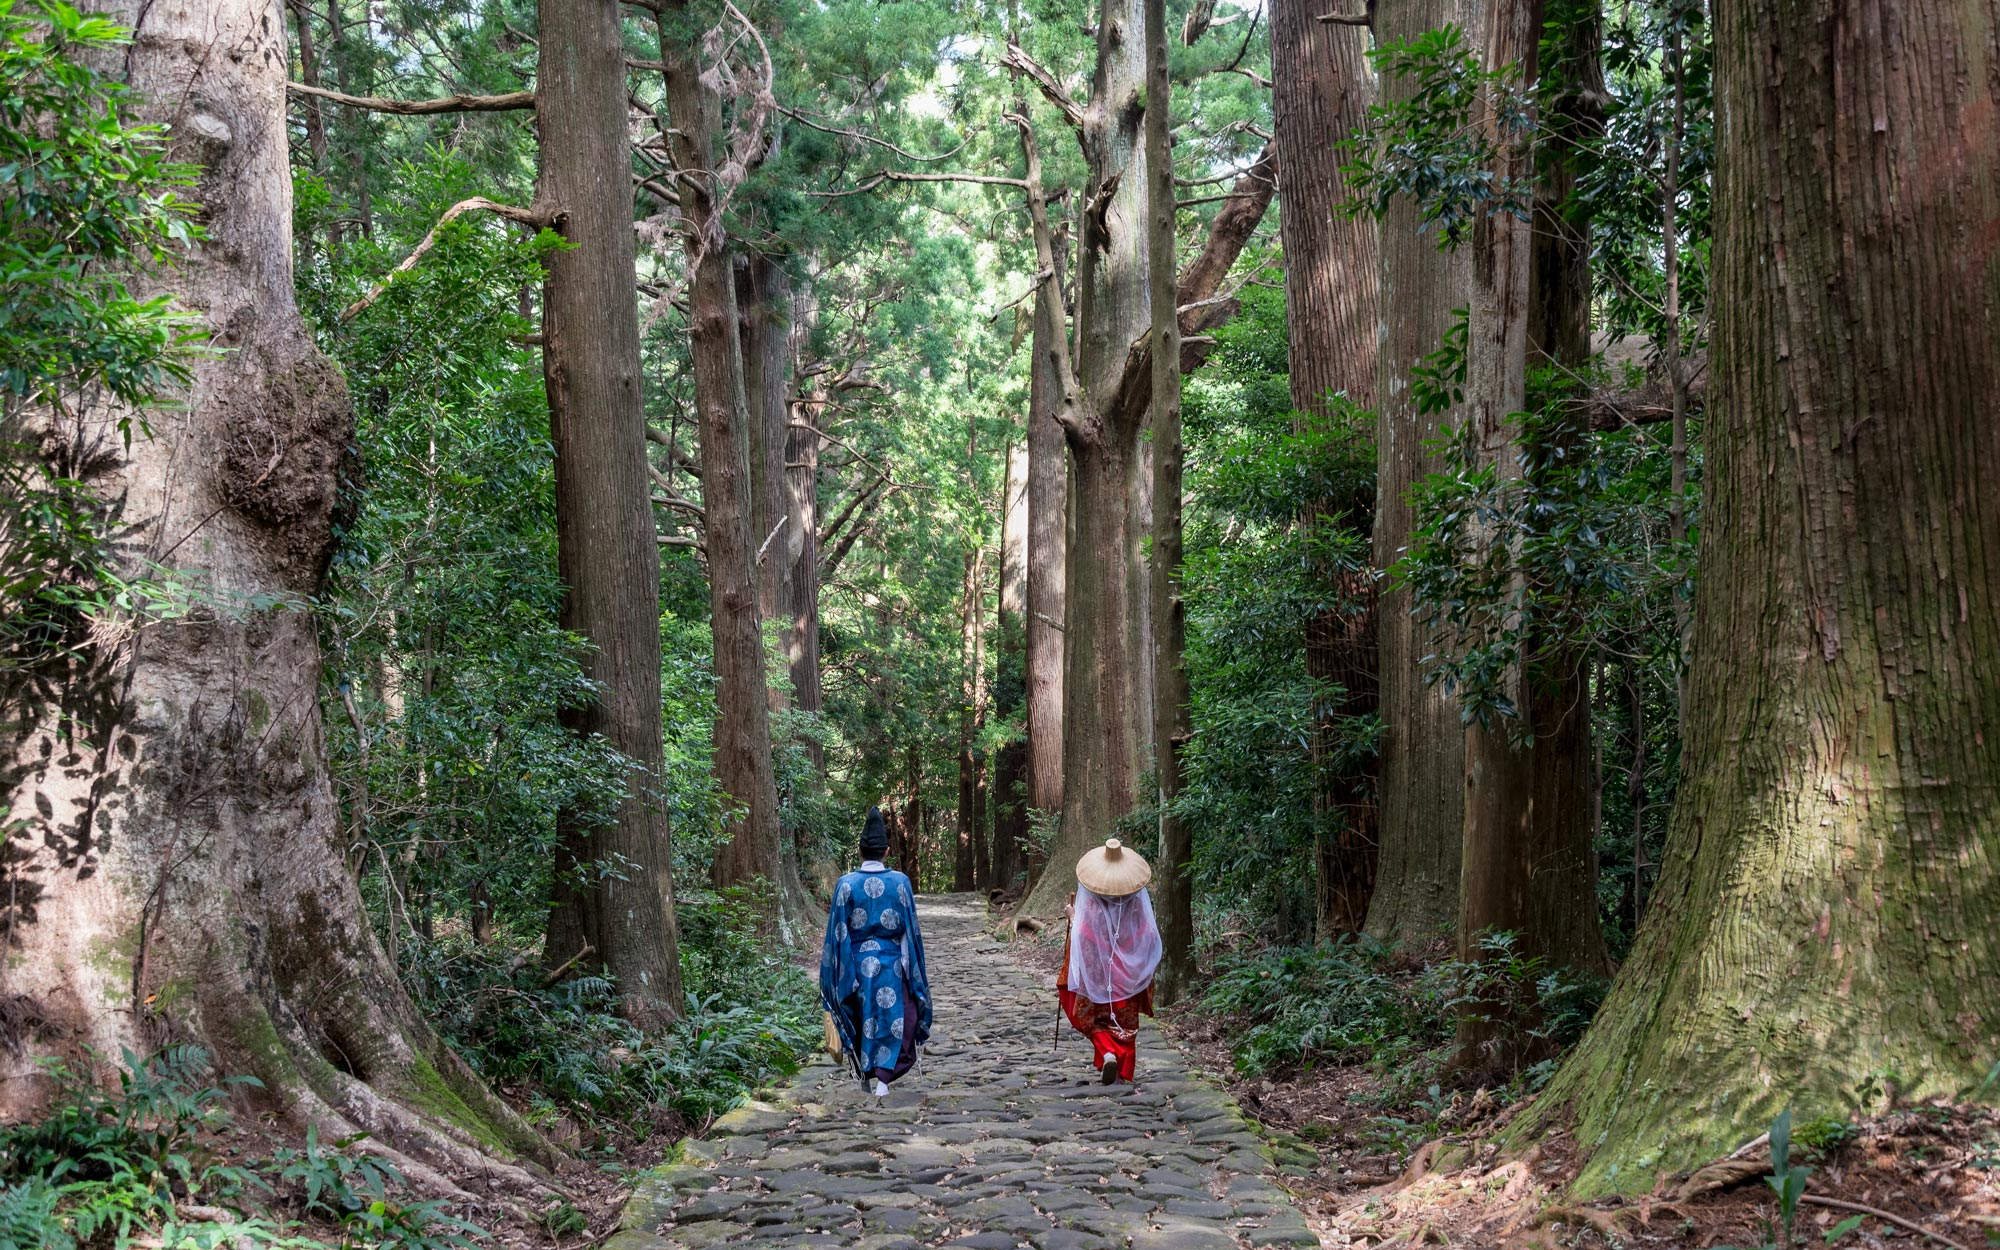 Japan's Kumano Kodo Trail